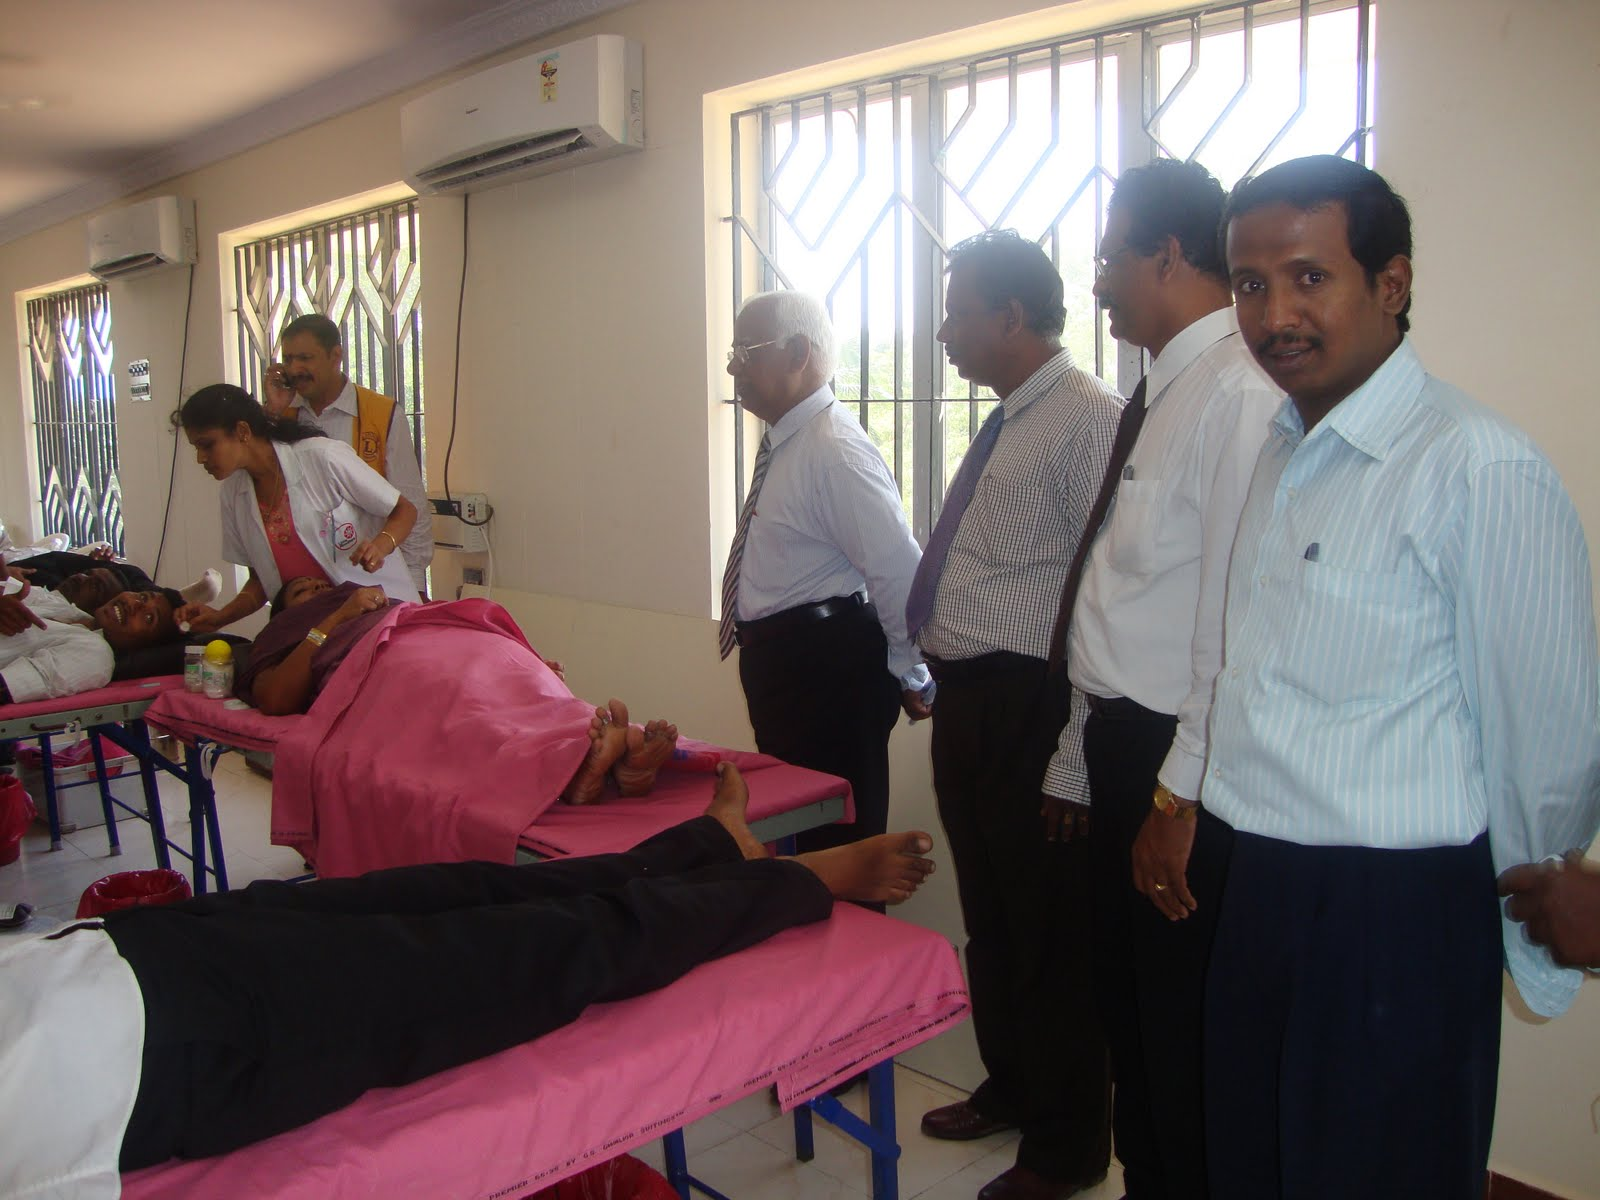 """blood donation camp in school """"excuses never save a life blood donation does"""" the members of orchids- the international school kurla believes in imbibing the principle of community service."""